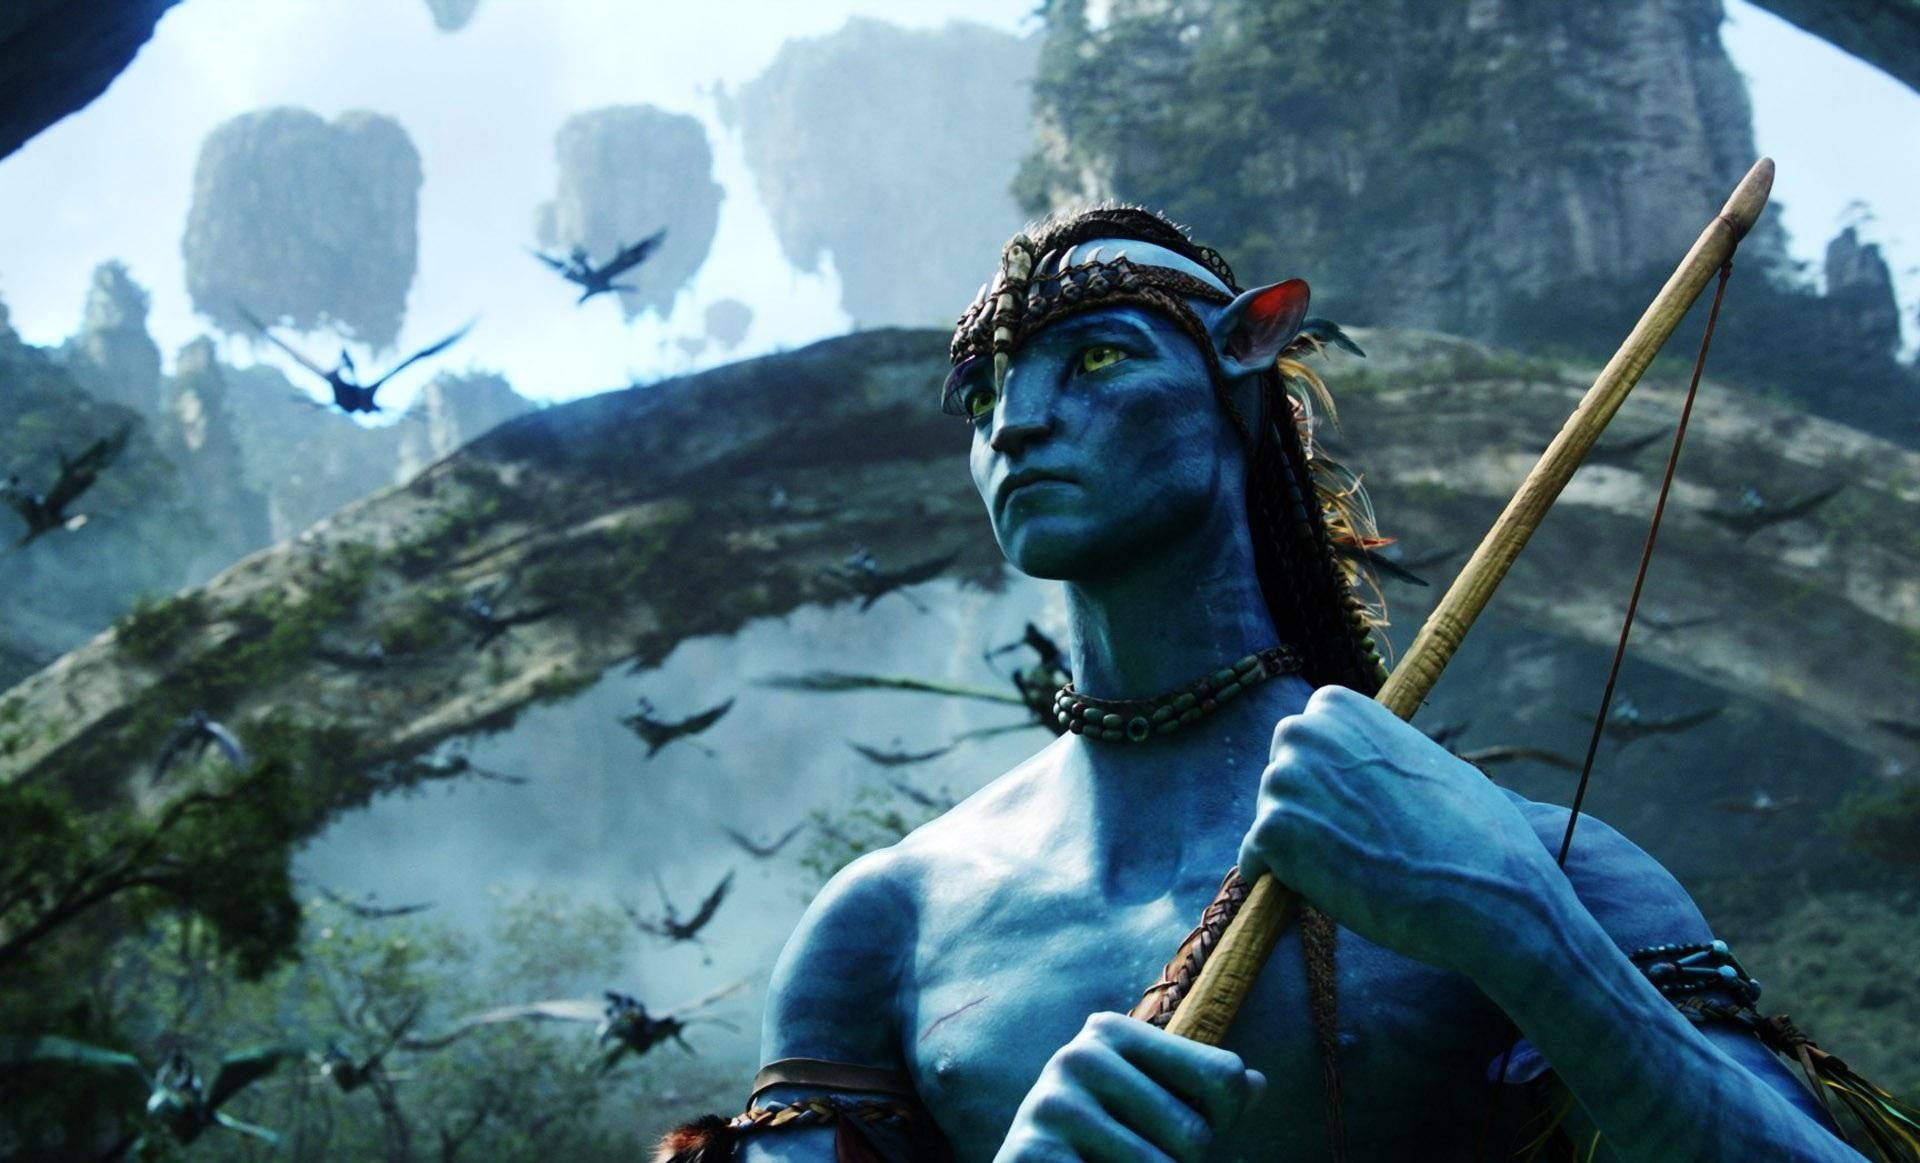 james cameron reveals plans for a fifth avatar movie | digital trends